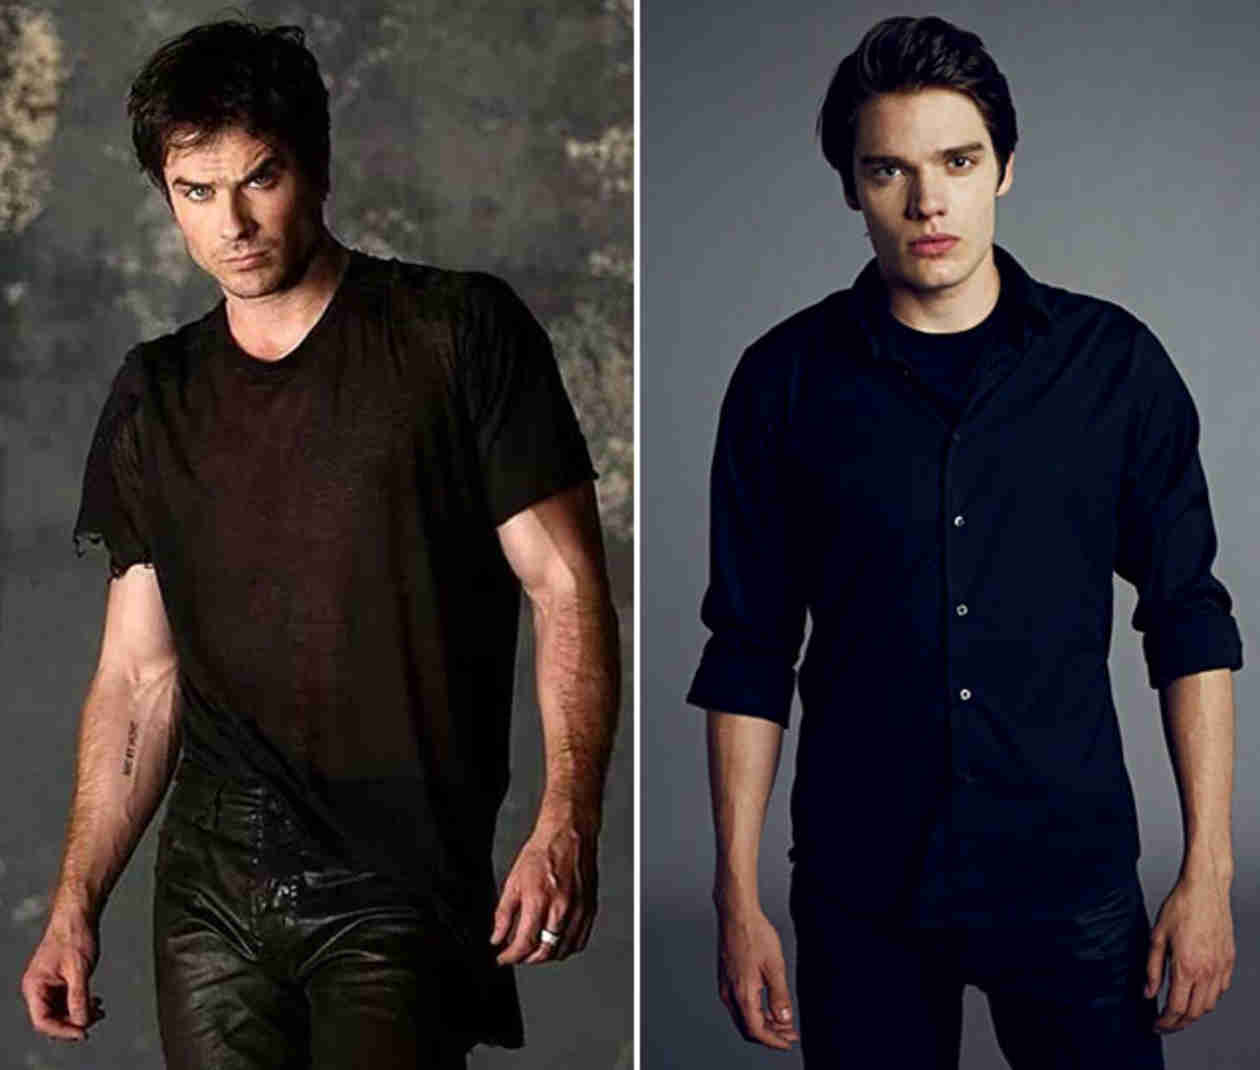 Damon Salvatore vs. Christian Ozera: Which Vampire Bad Boy Is Hotter?